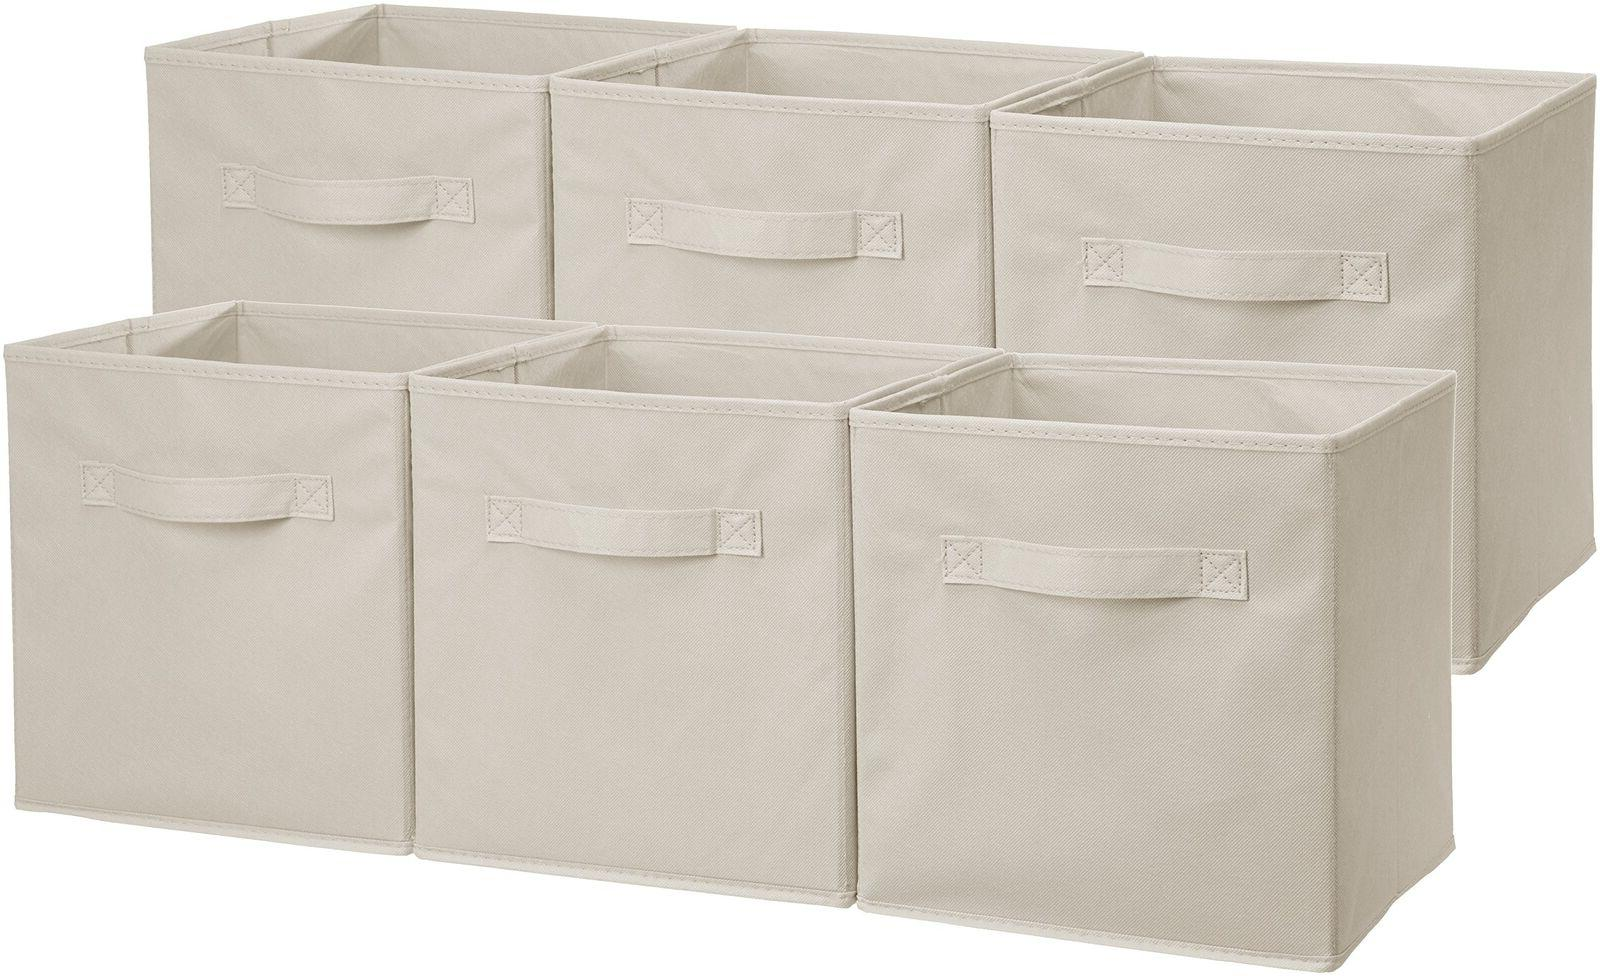 AmazonBasics Foldable Storage Cubes - 6-Pack, Beige